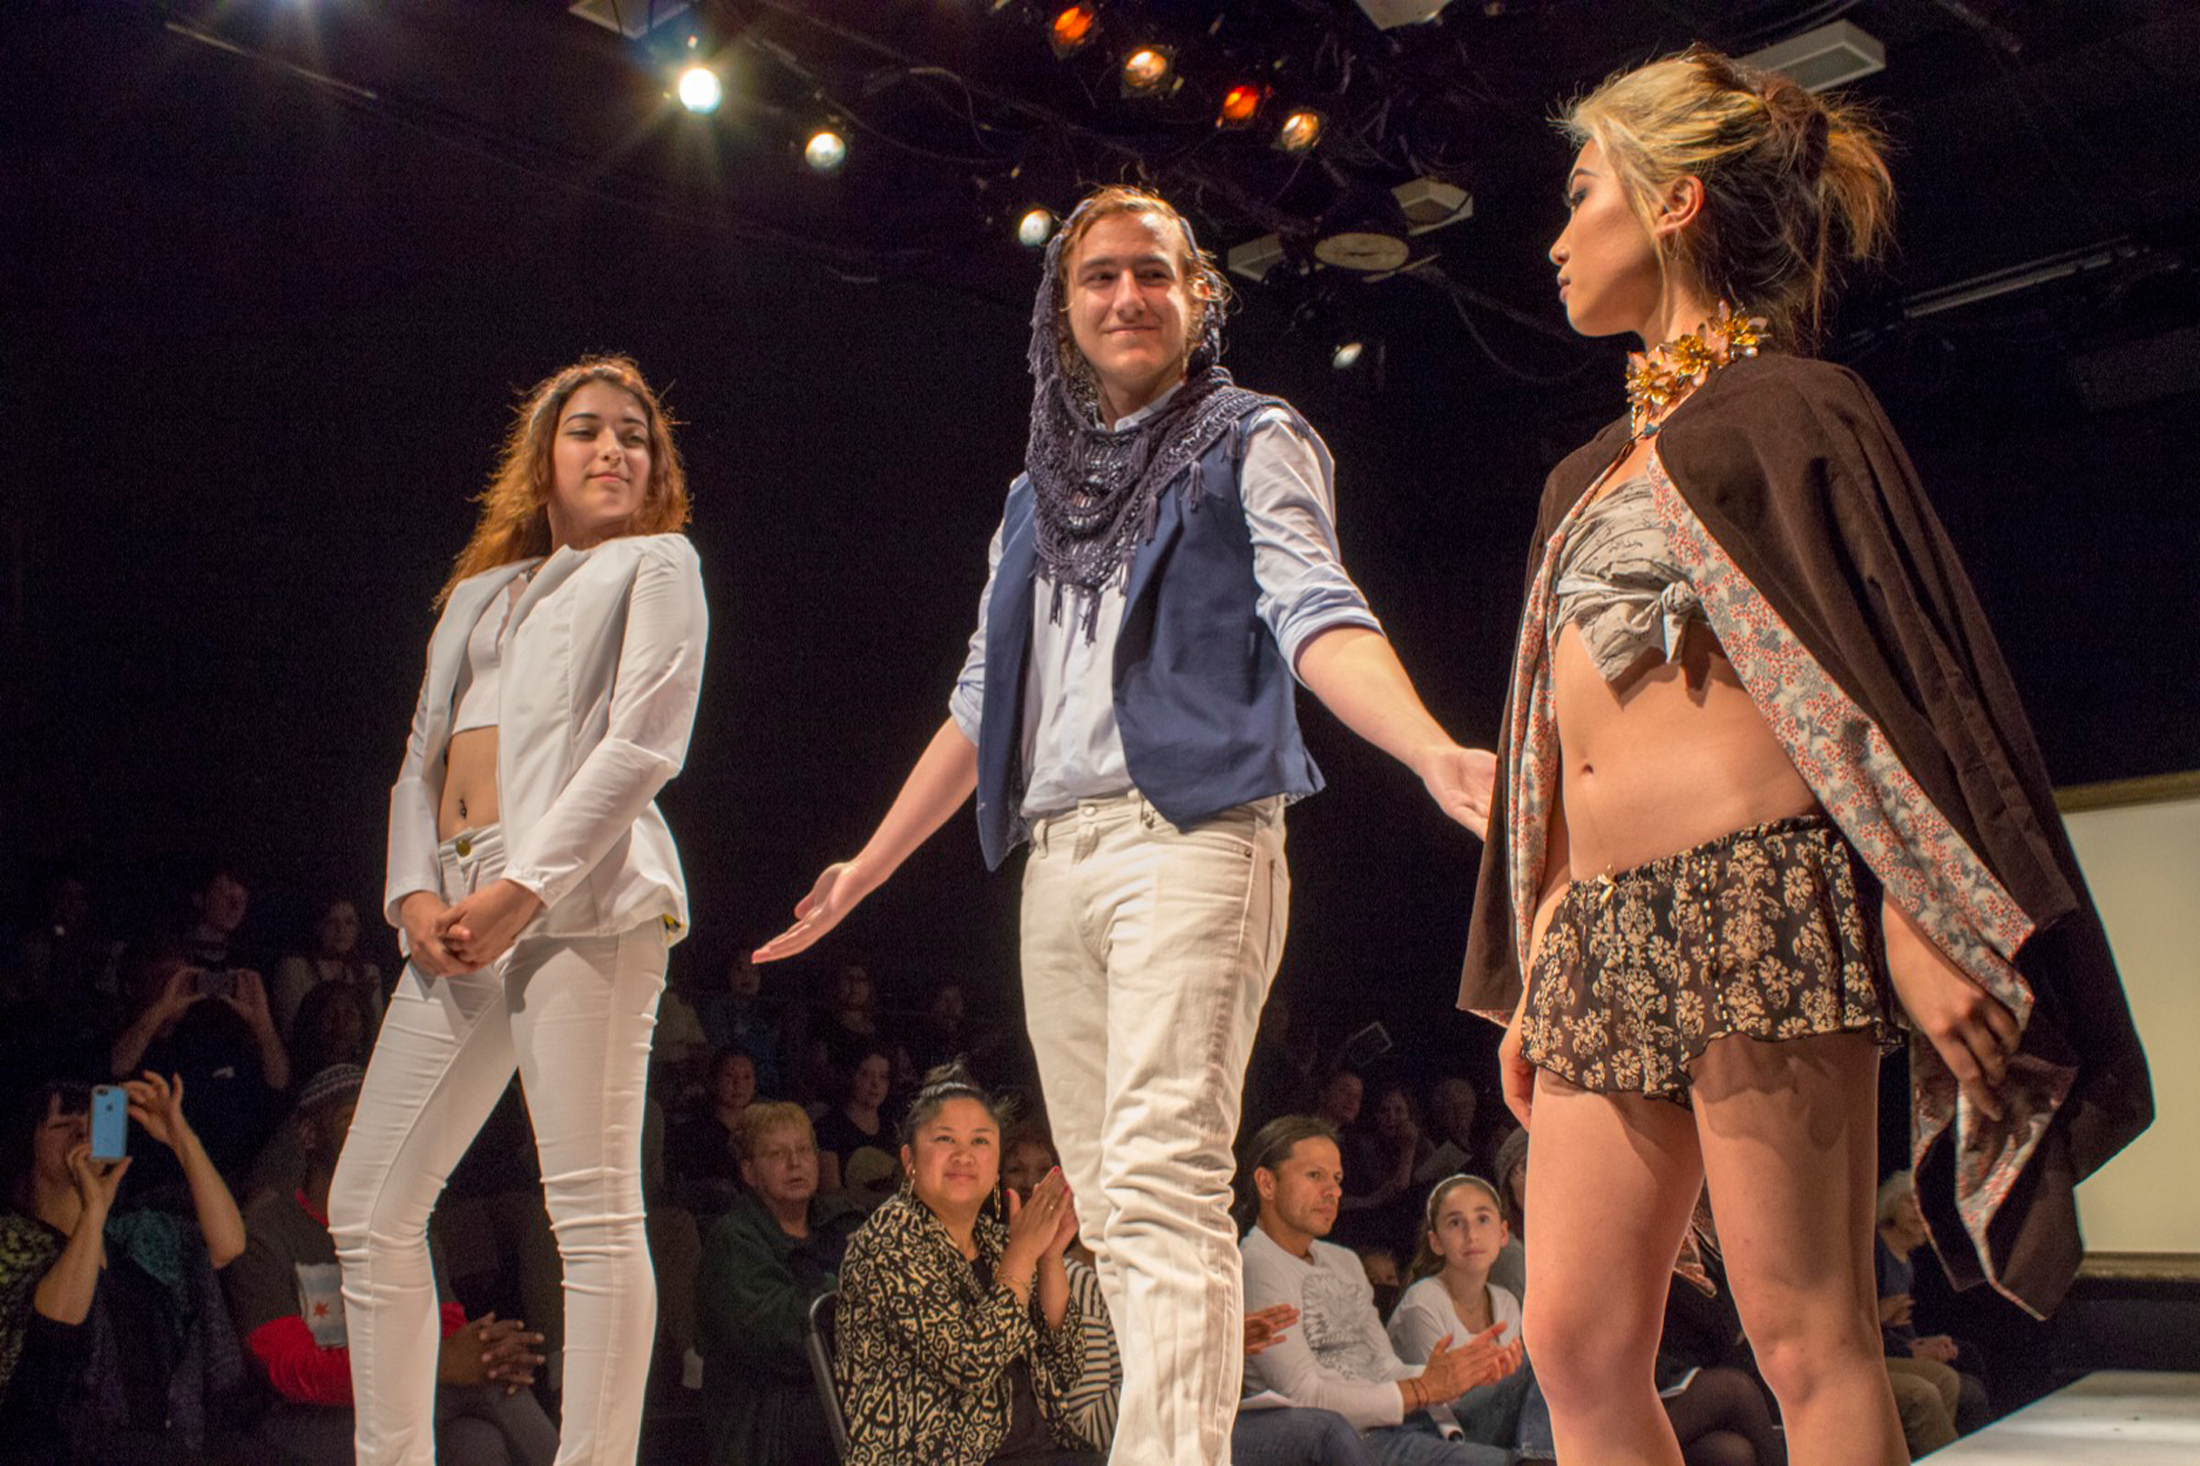 OSA-fashion-show-2015-greg_gutbezahl038.jpg